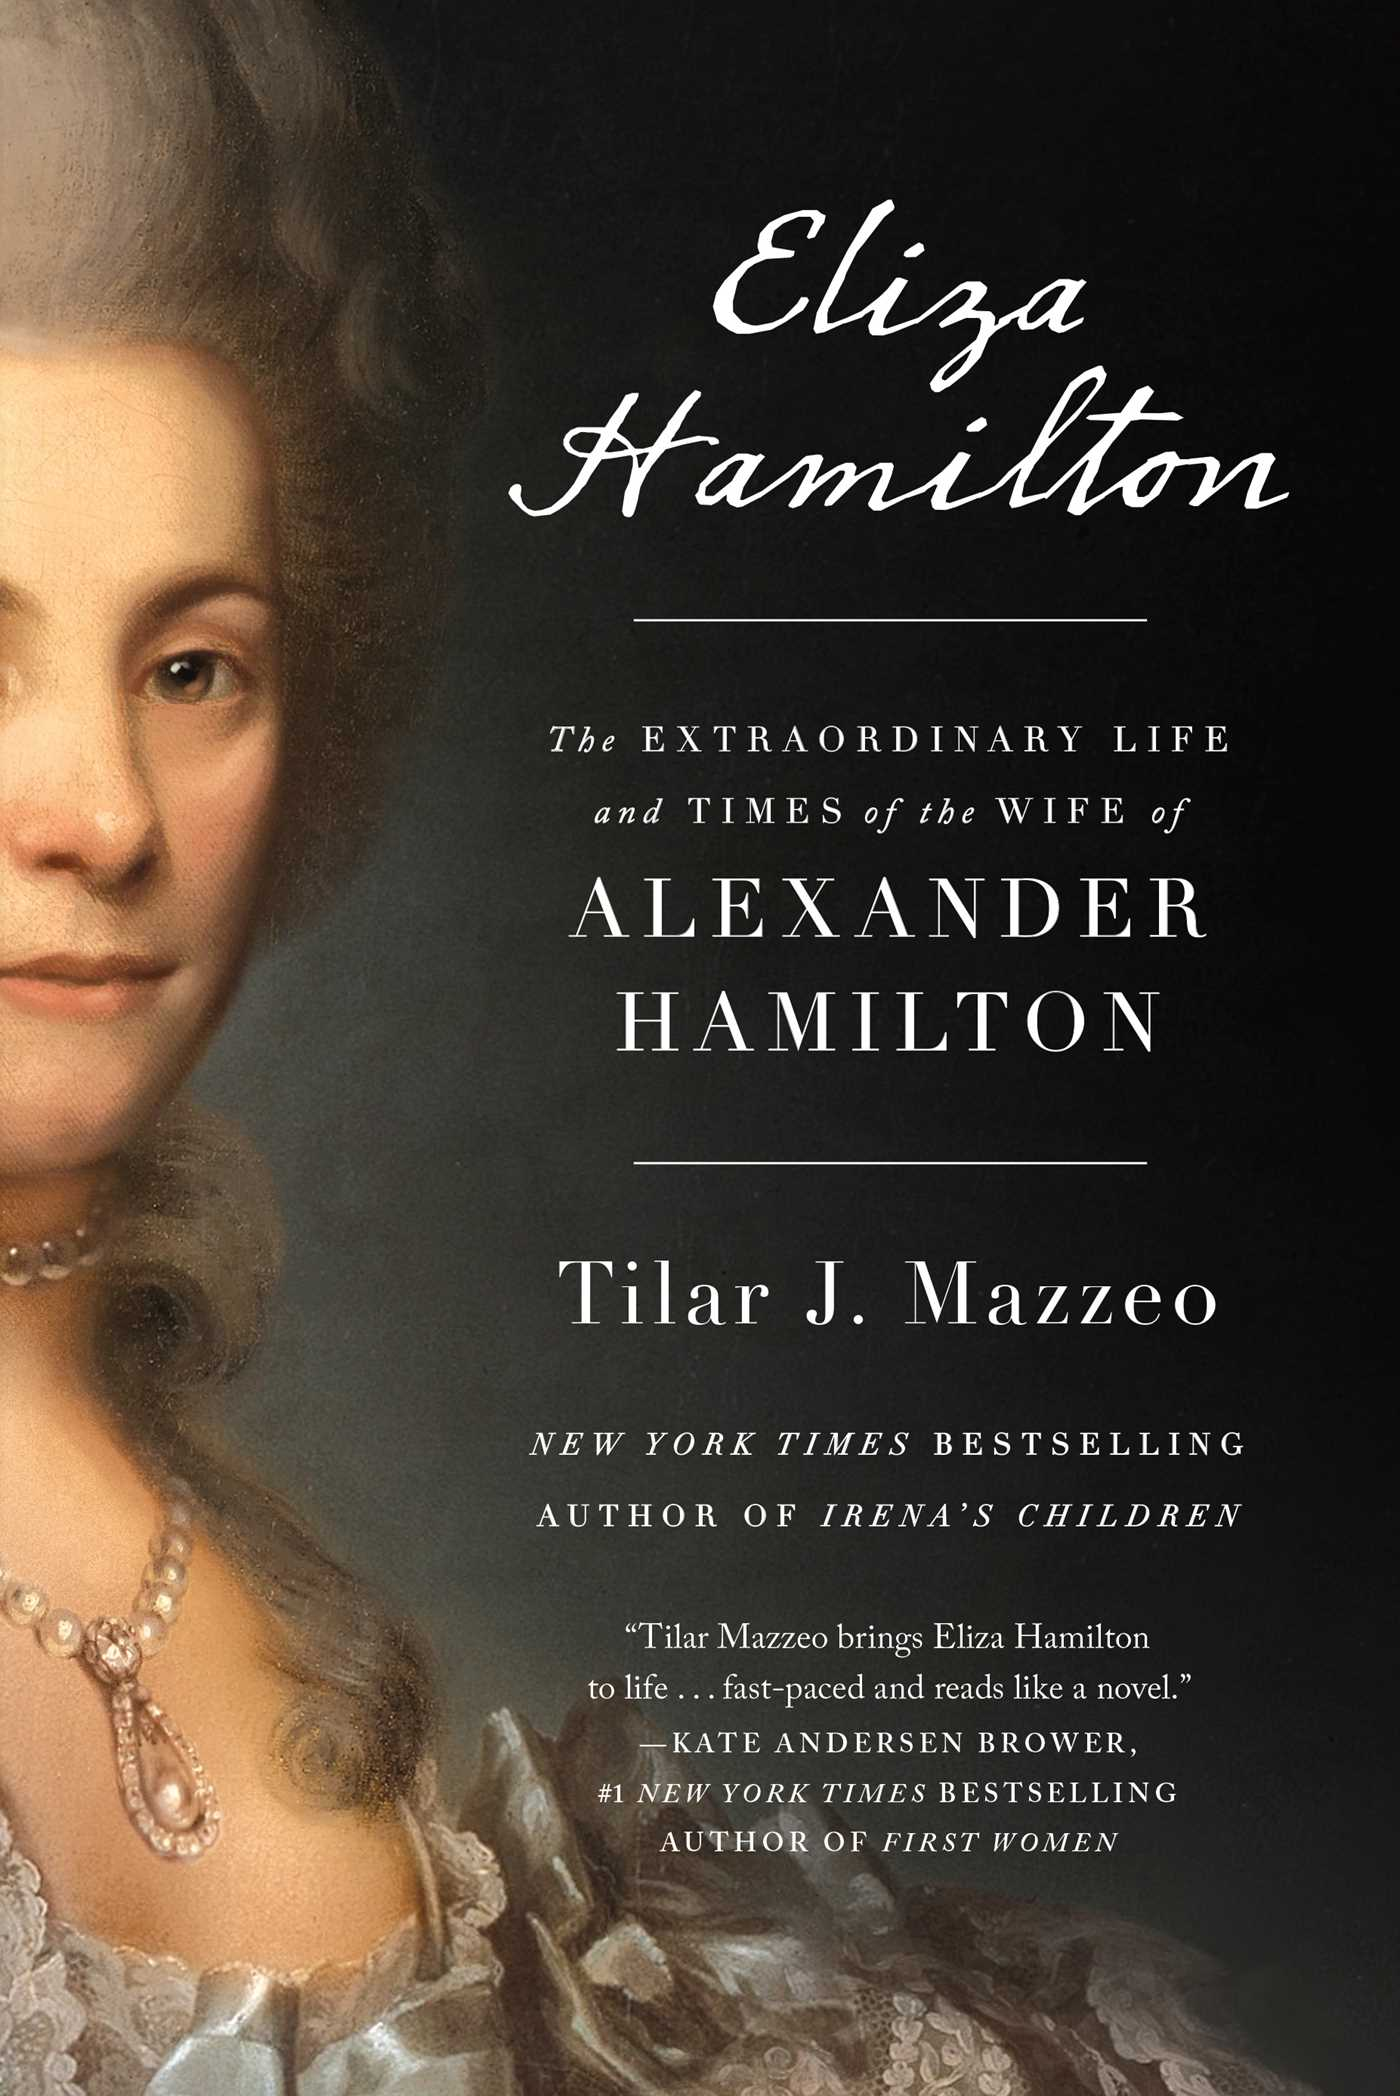 The cover of the book Eliza Hamilton